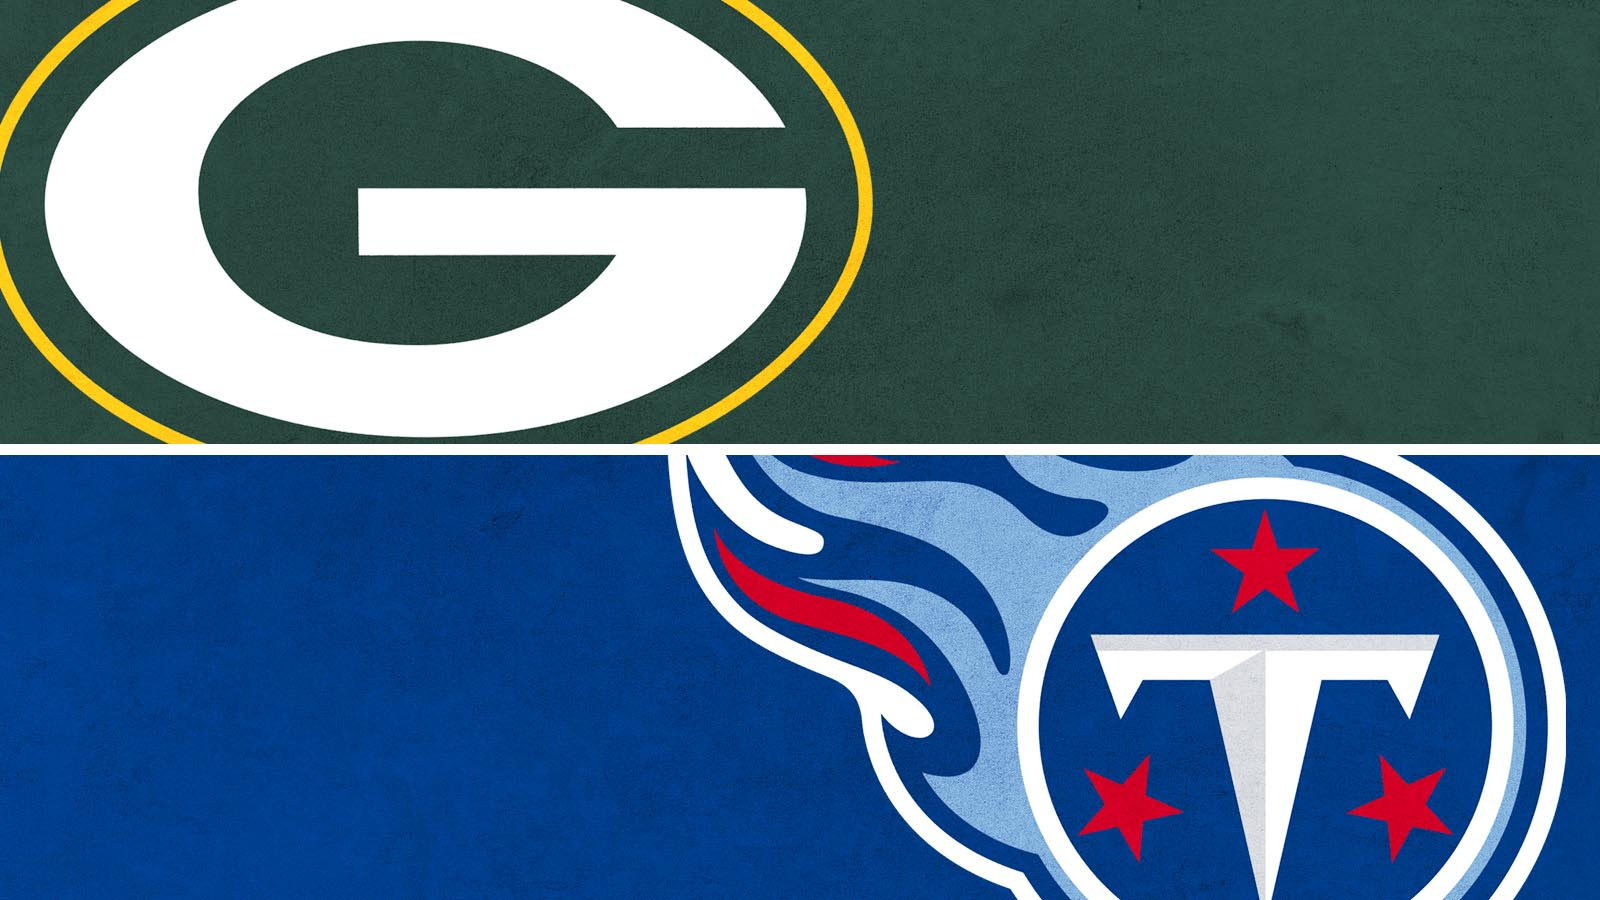 Aaron Rodgers & The Green Bay Packers Vs. Derrick Henry & The Tennessee Titans; Week 16